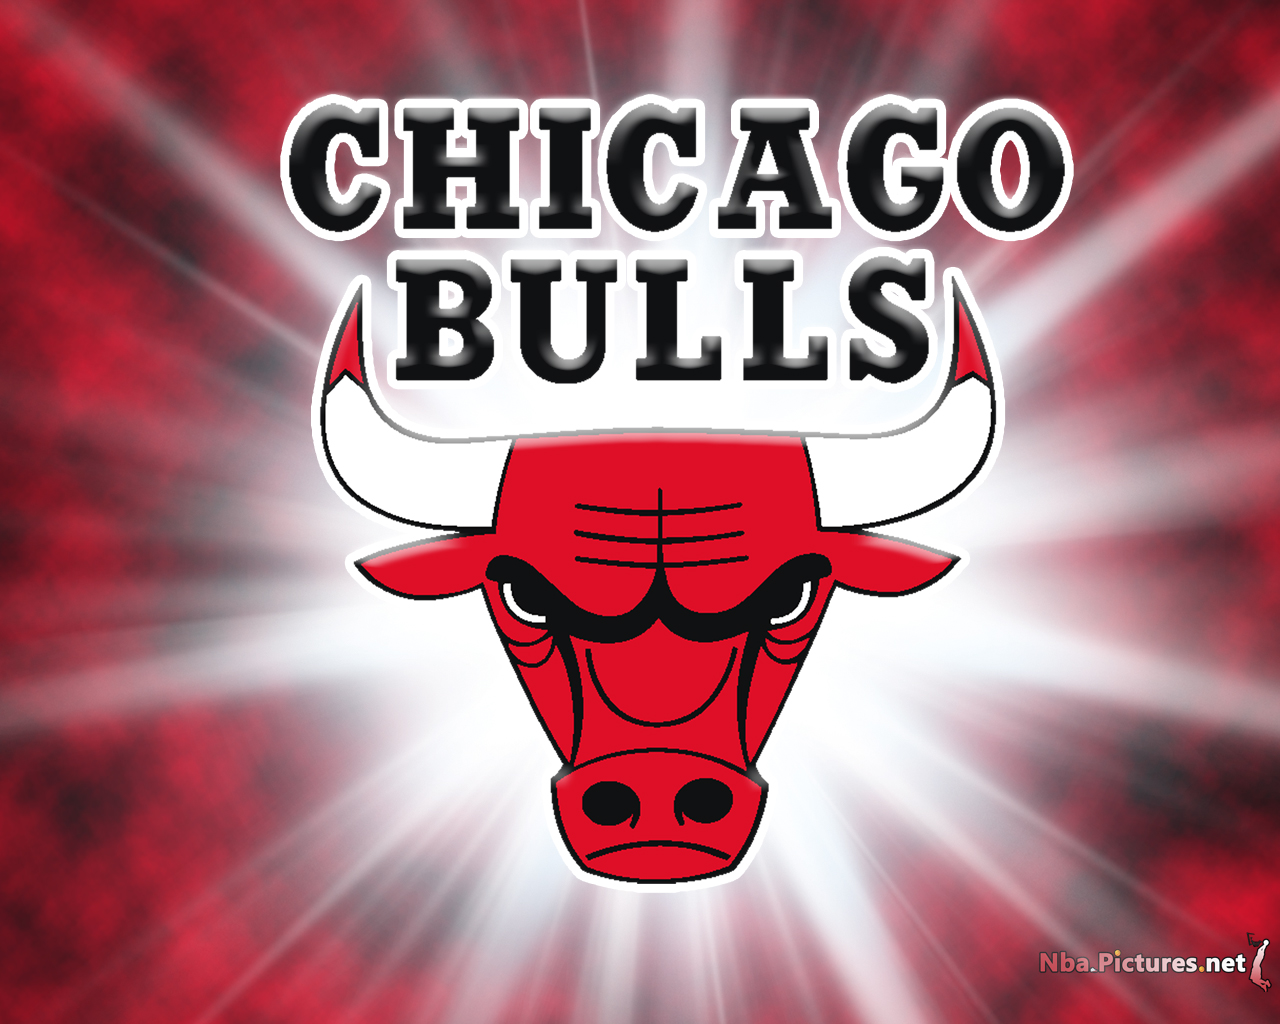 Chicago Bulls wallpapers Chicago Bulls background   Page 15 1280x1024